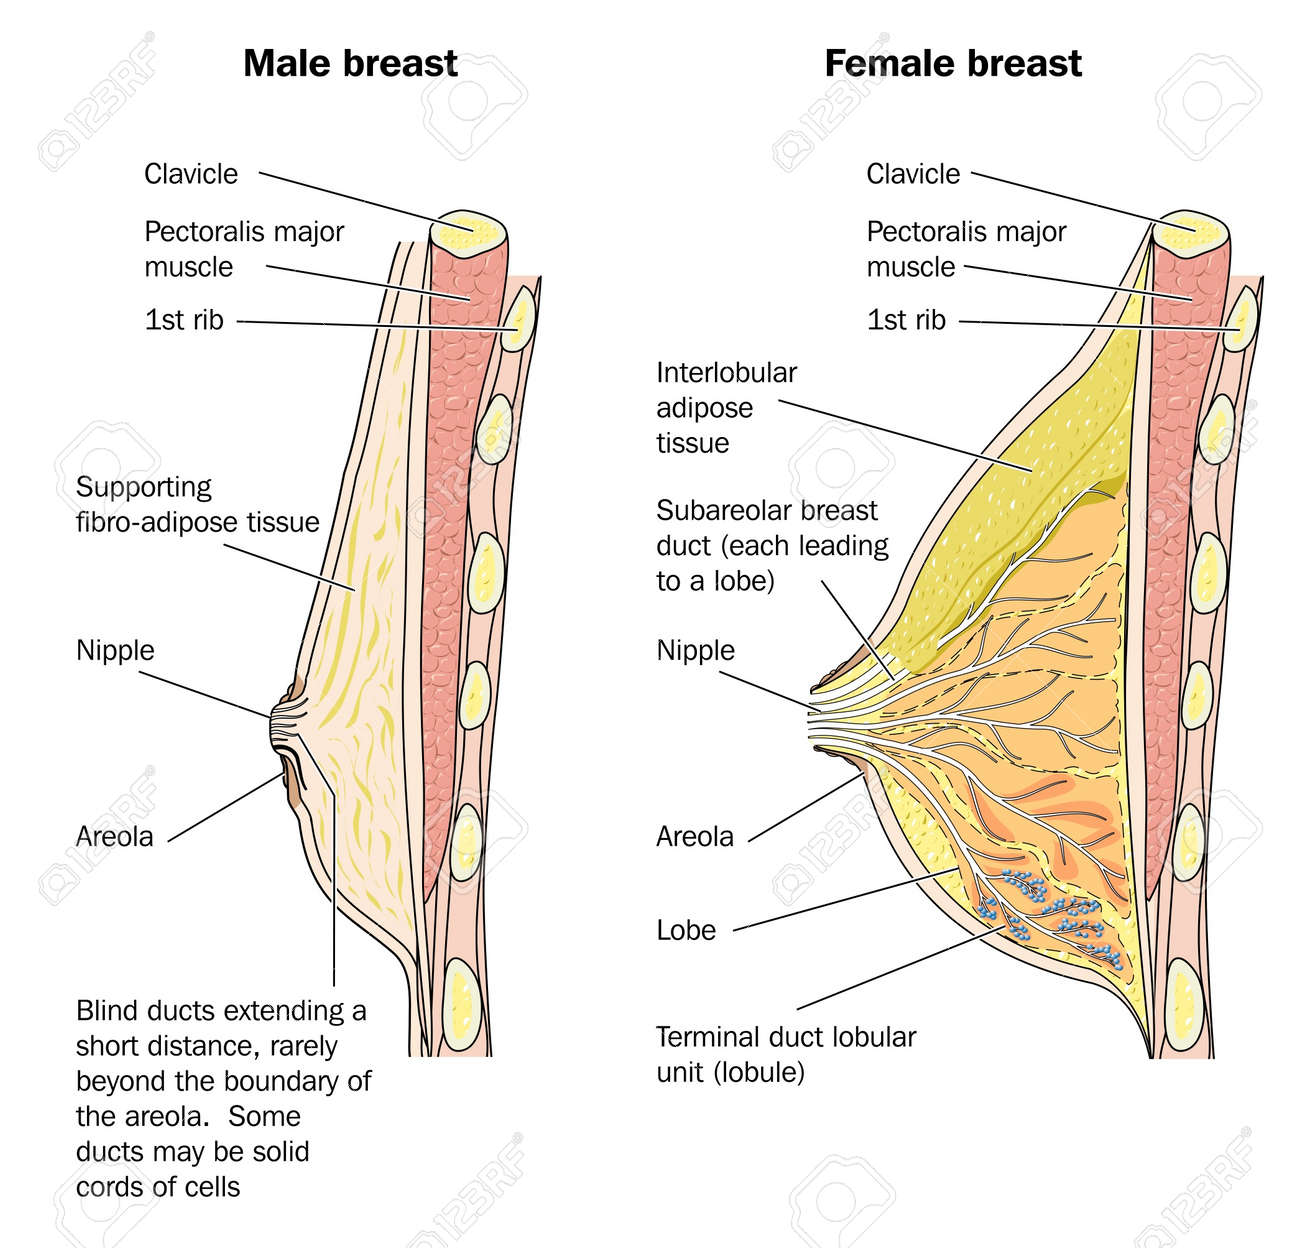 why male like female breast